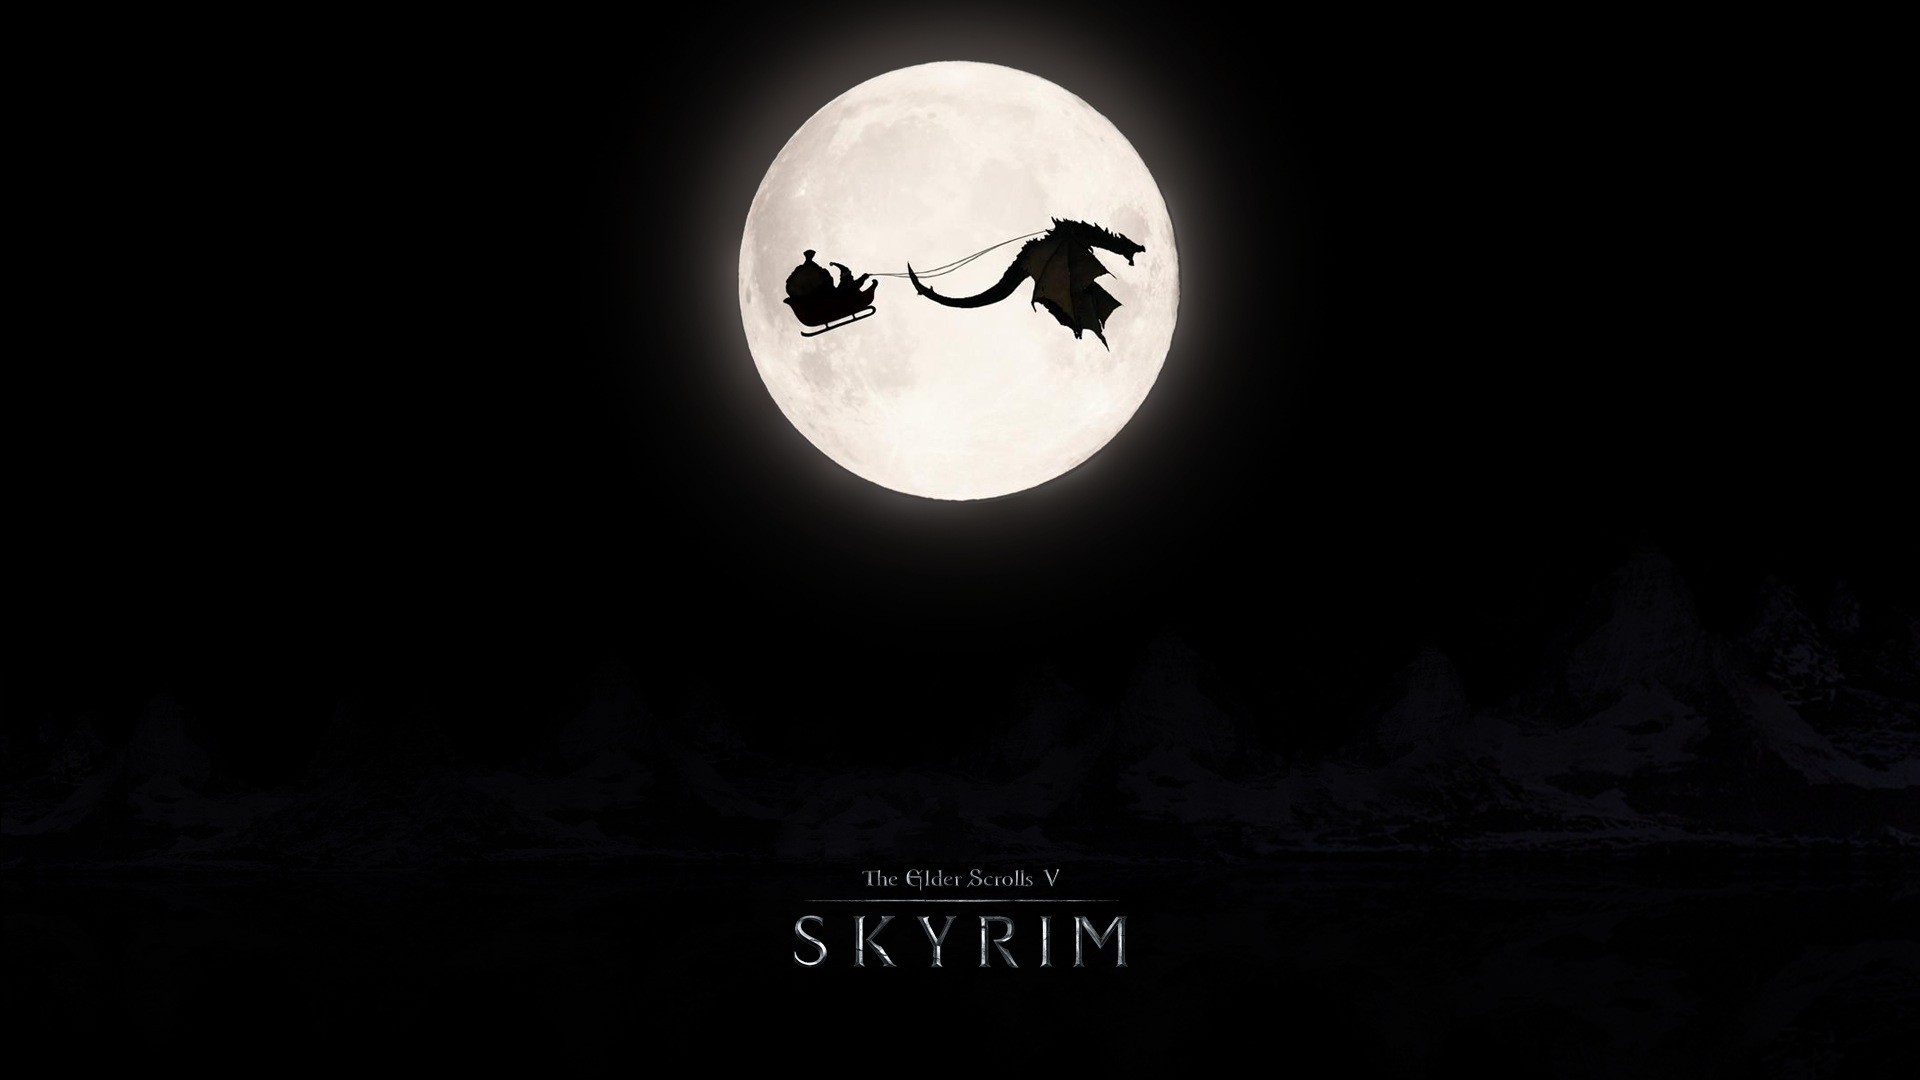 Wallpaper The Elder Scrolls V: Skyrim Moon